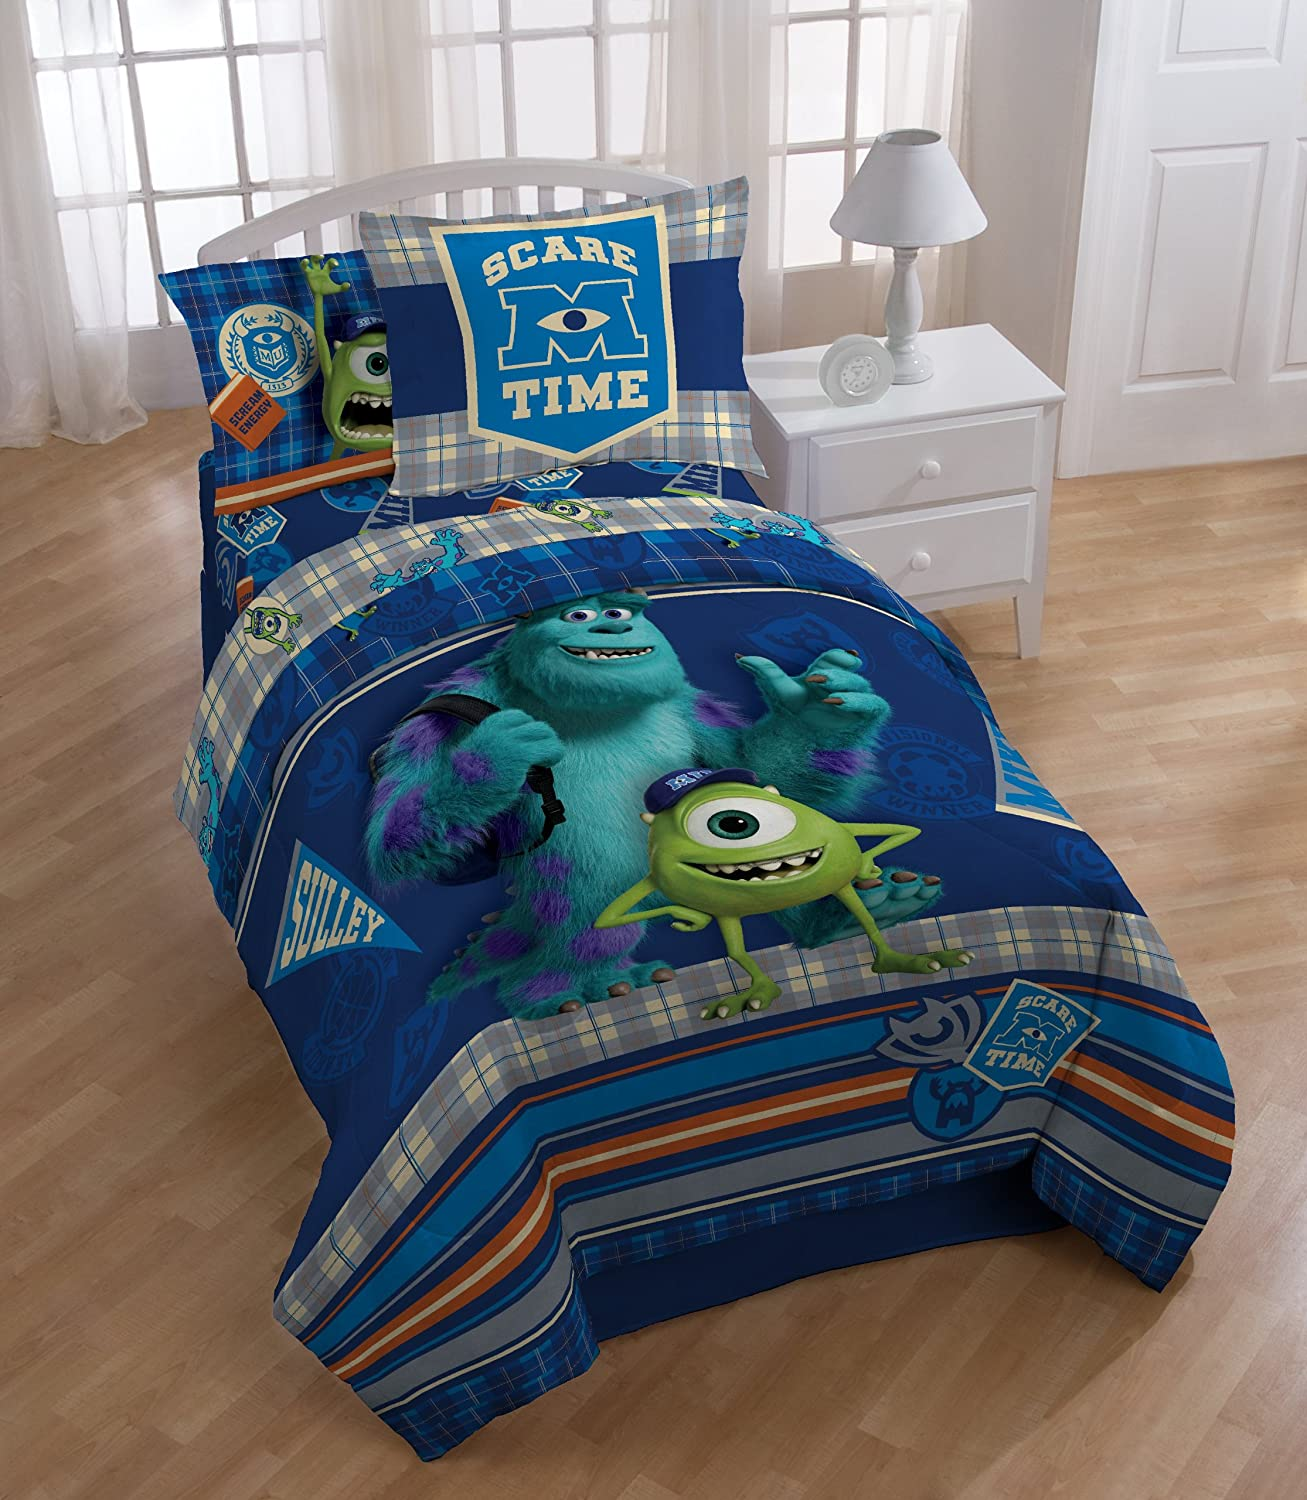 Monster University Scare-Care Comforter Set Twin & Monsters Inc Bedroom Decor Archives - Groovy Kids Gear